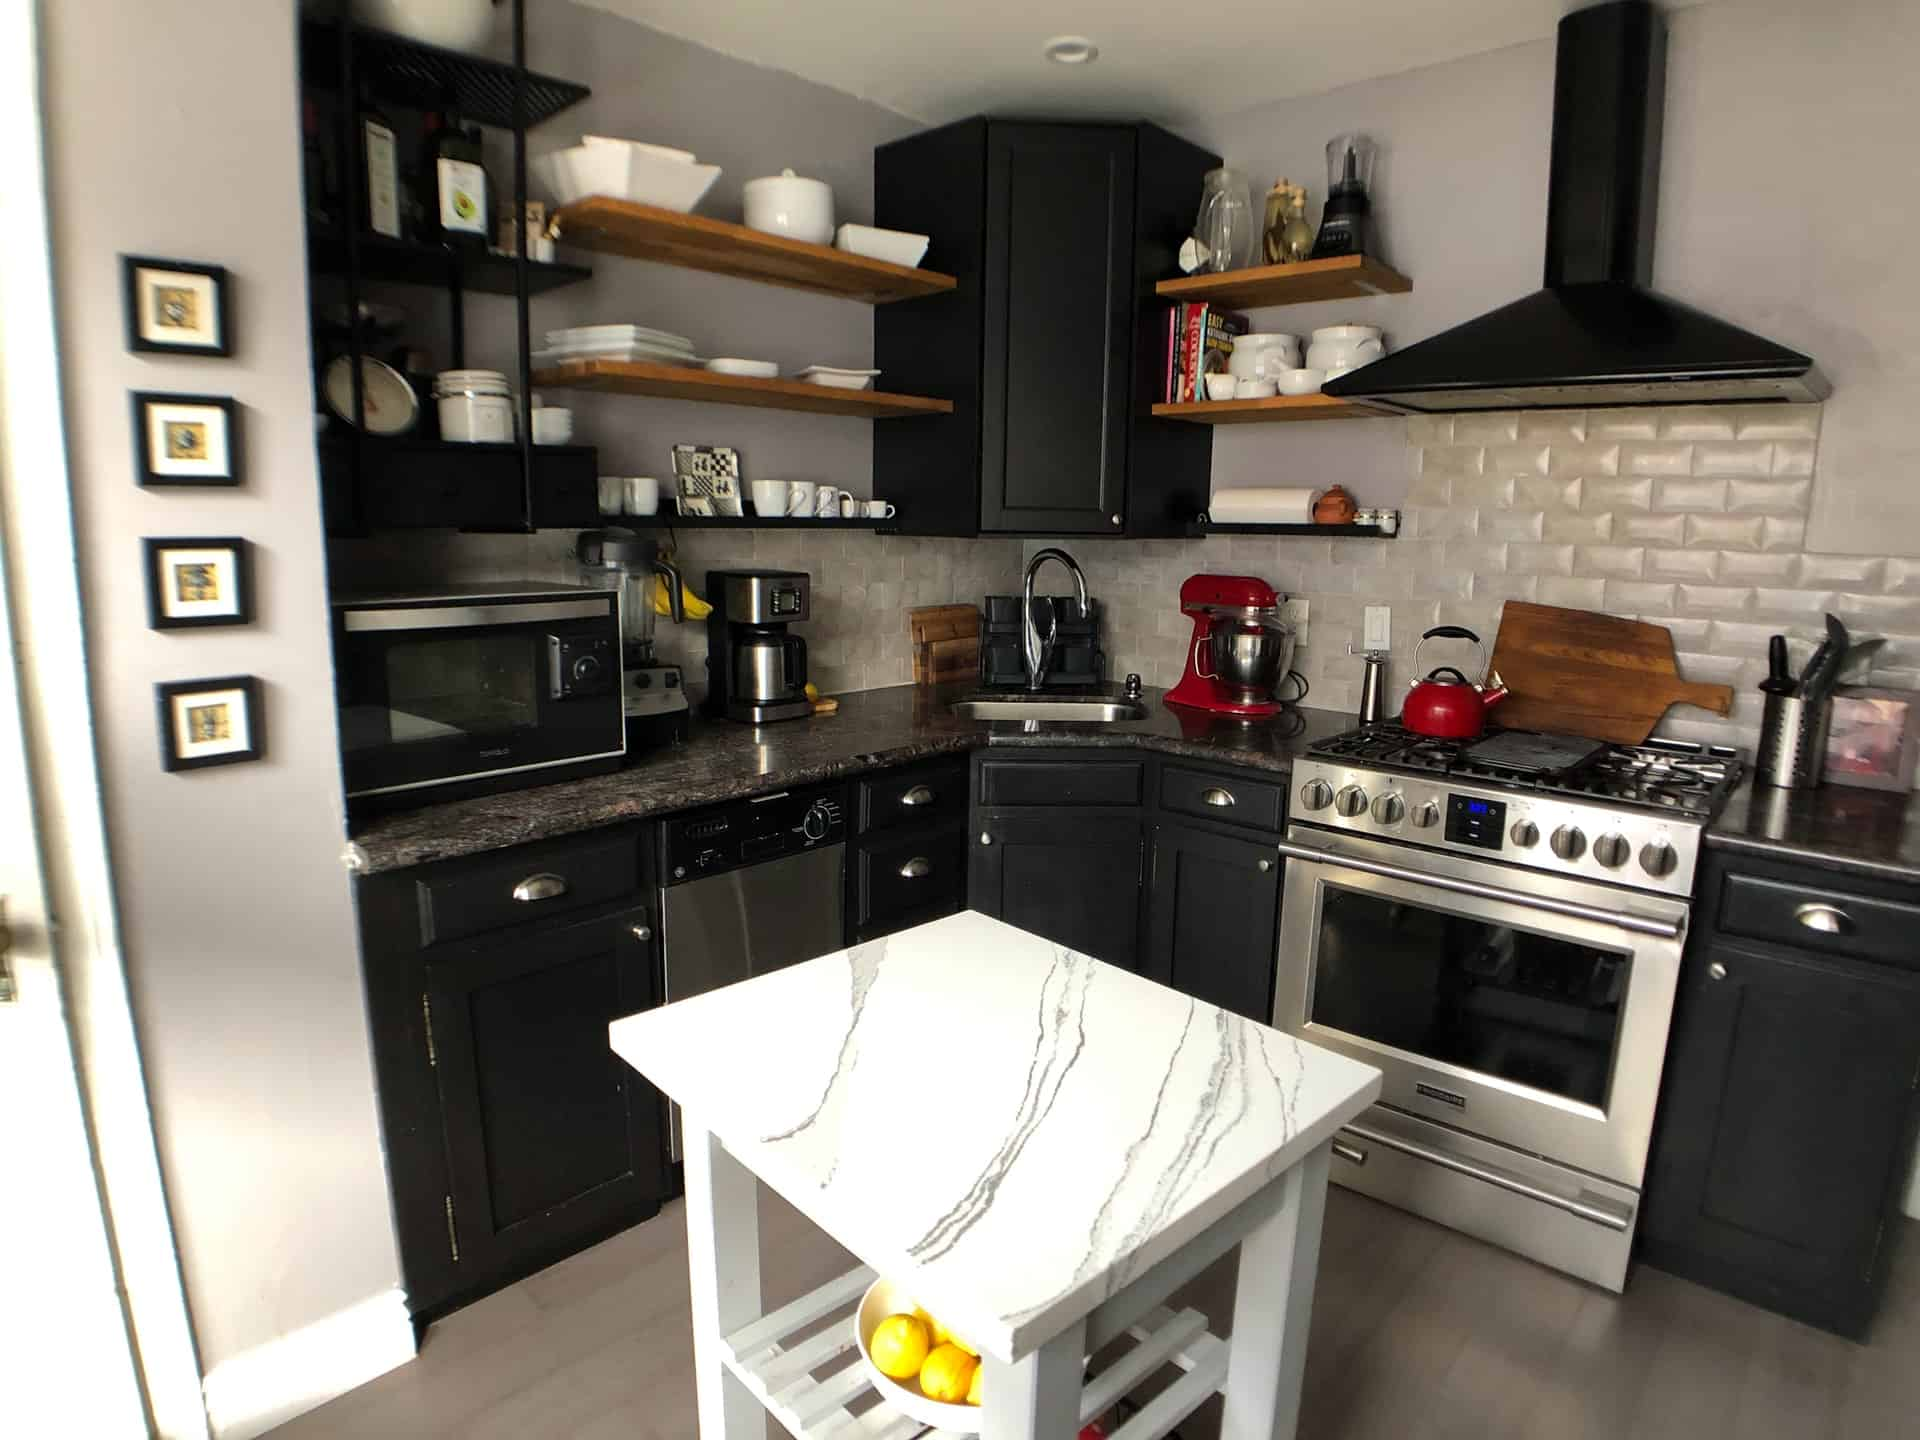 Black to Black kitchen cabinet ideas